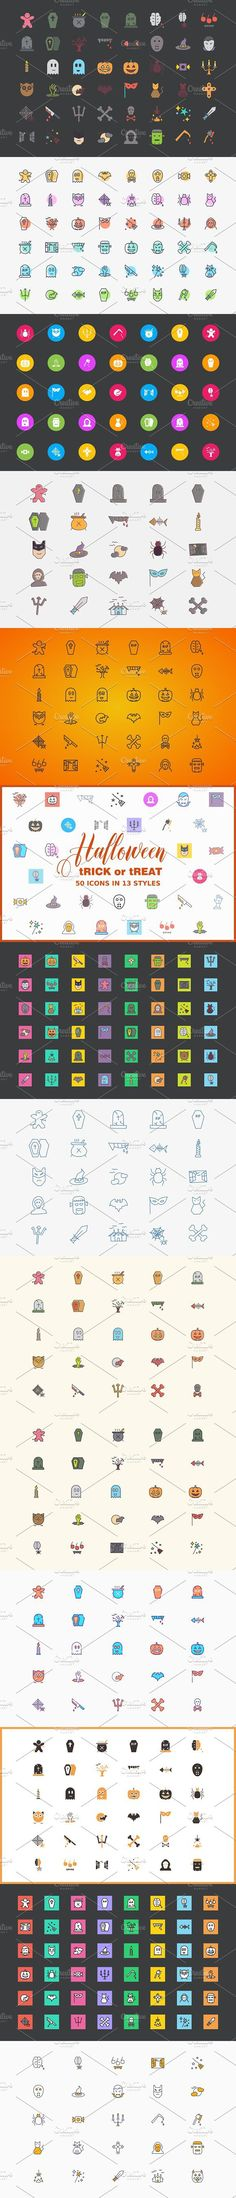 320 + icons filled outline style Icons Pinterest Outlines